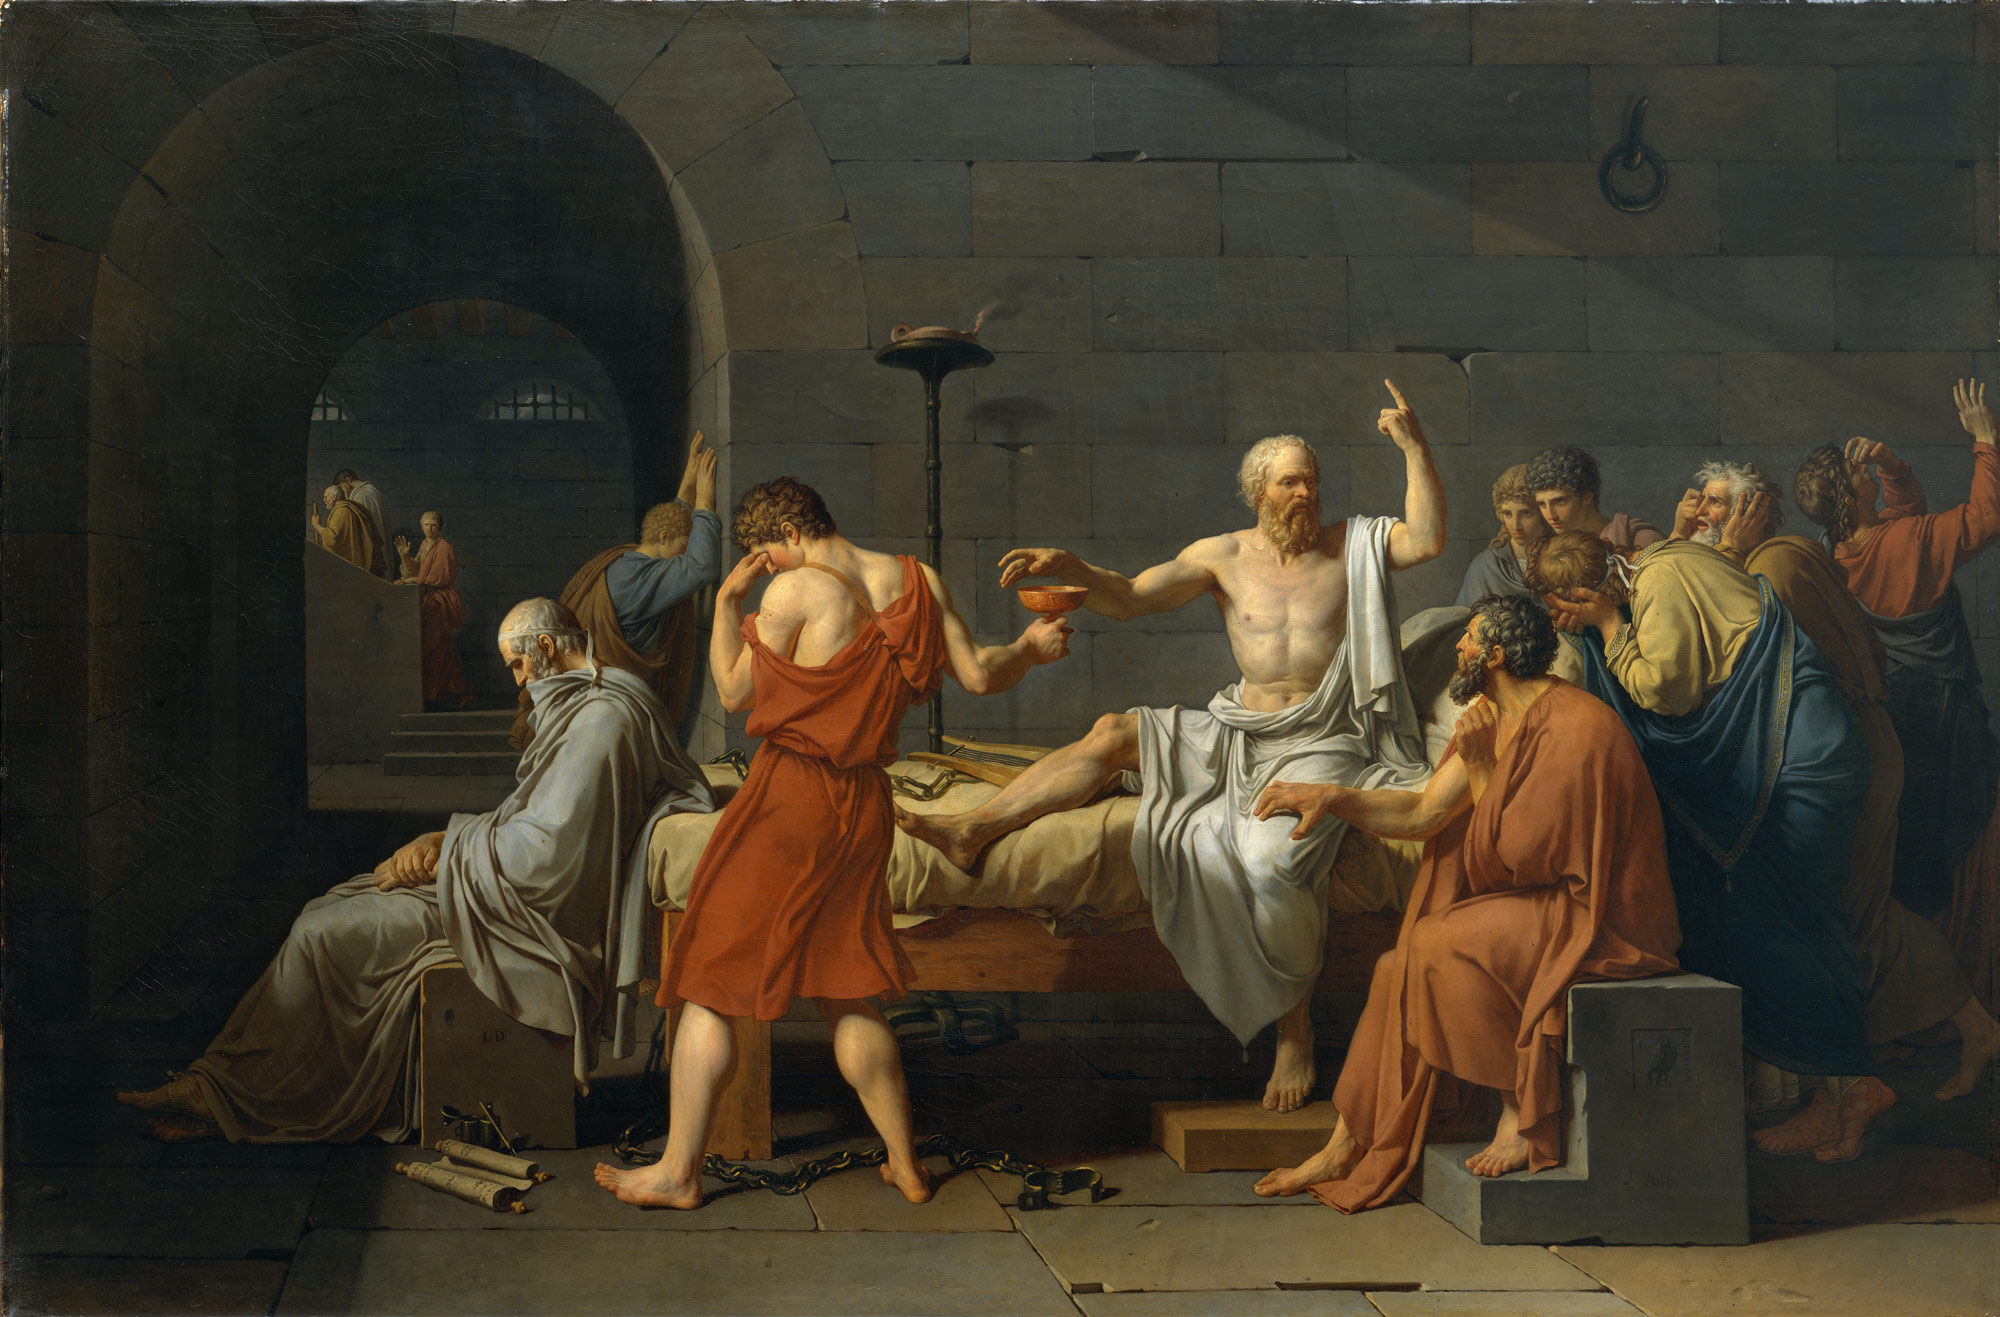 The Death of Socrates, Jacques Louis David, 1787, Oil on canvas, 51 x 77 1/4 in.